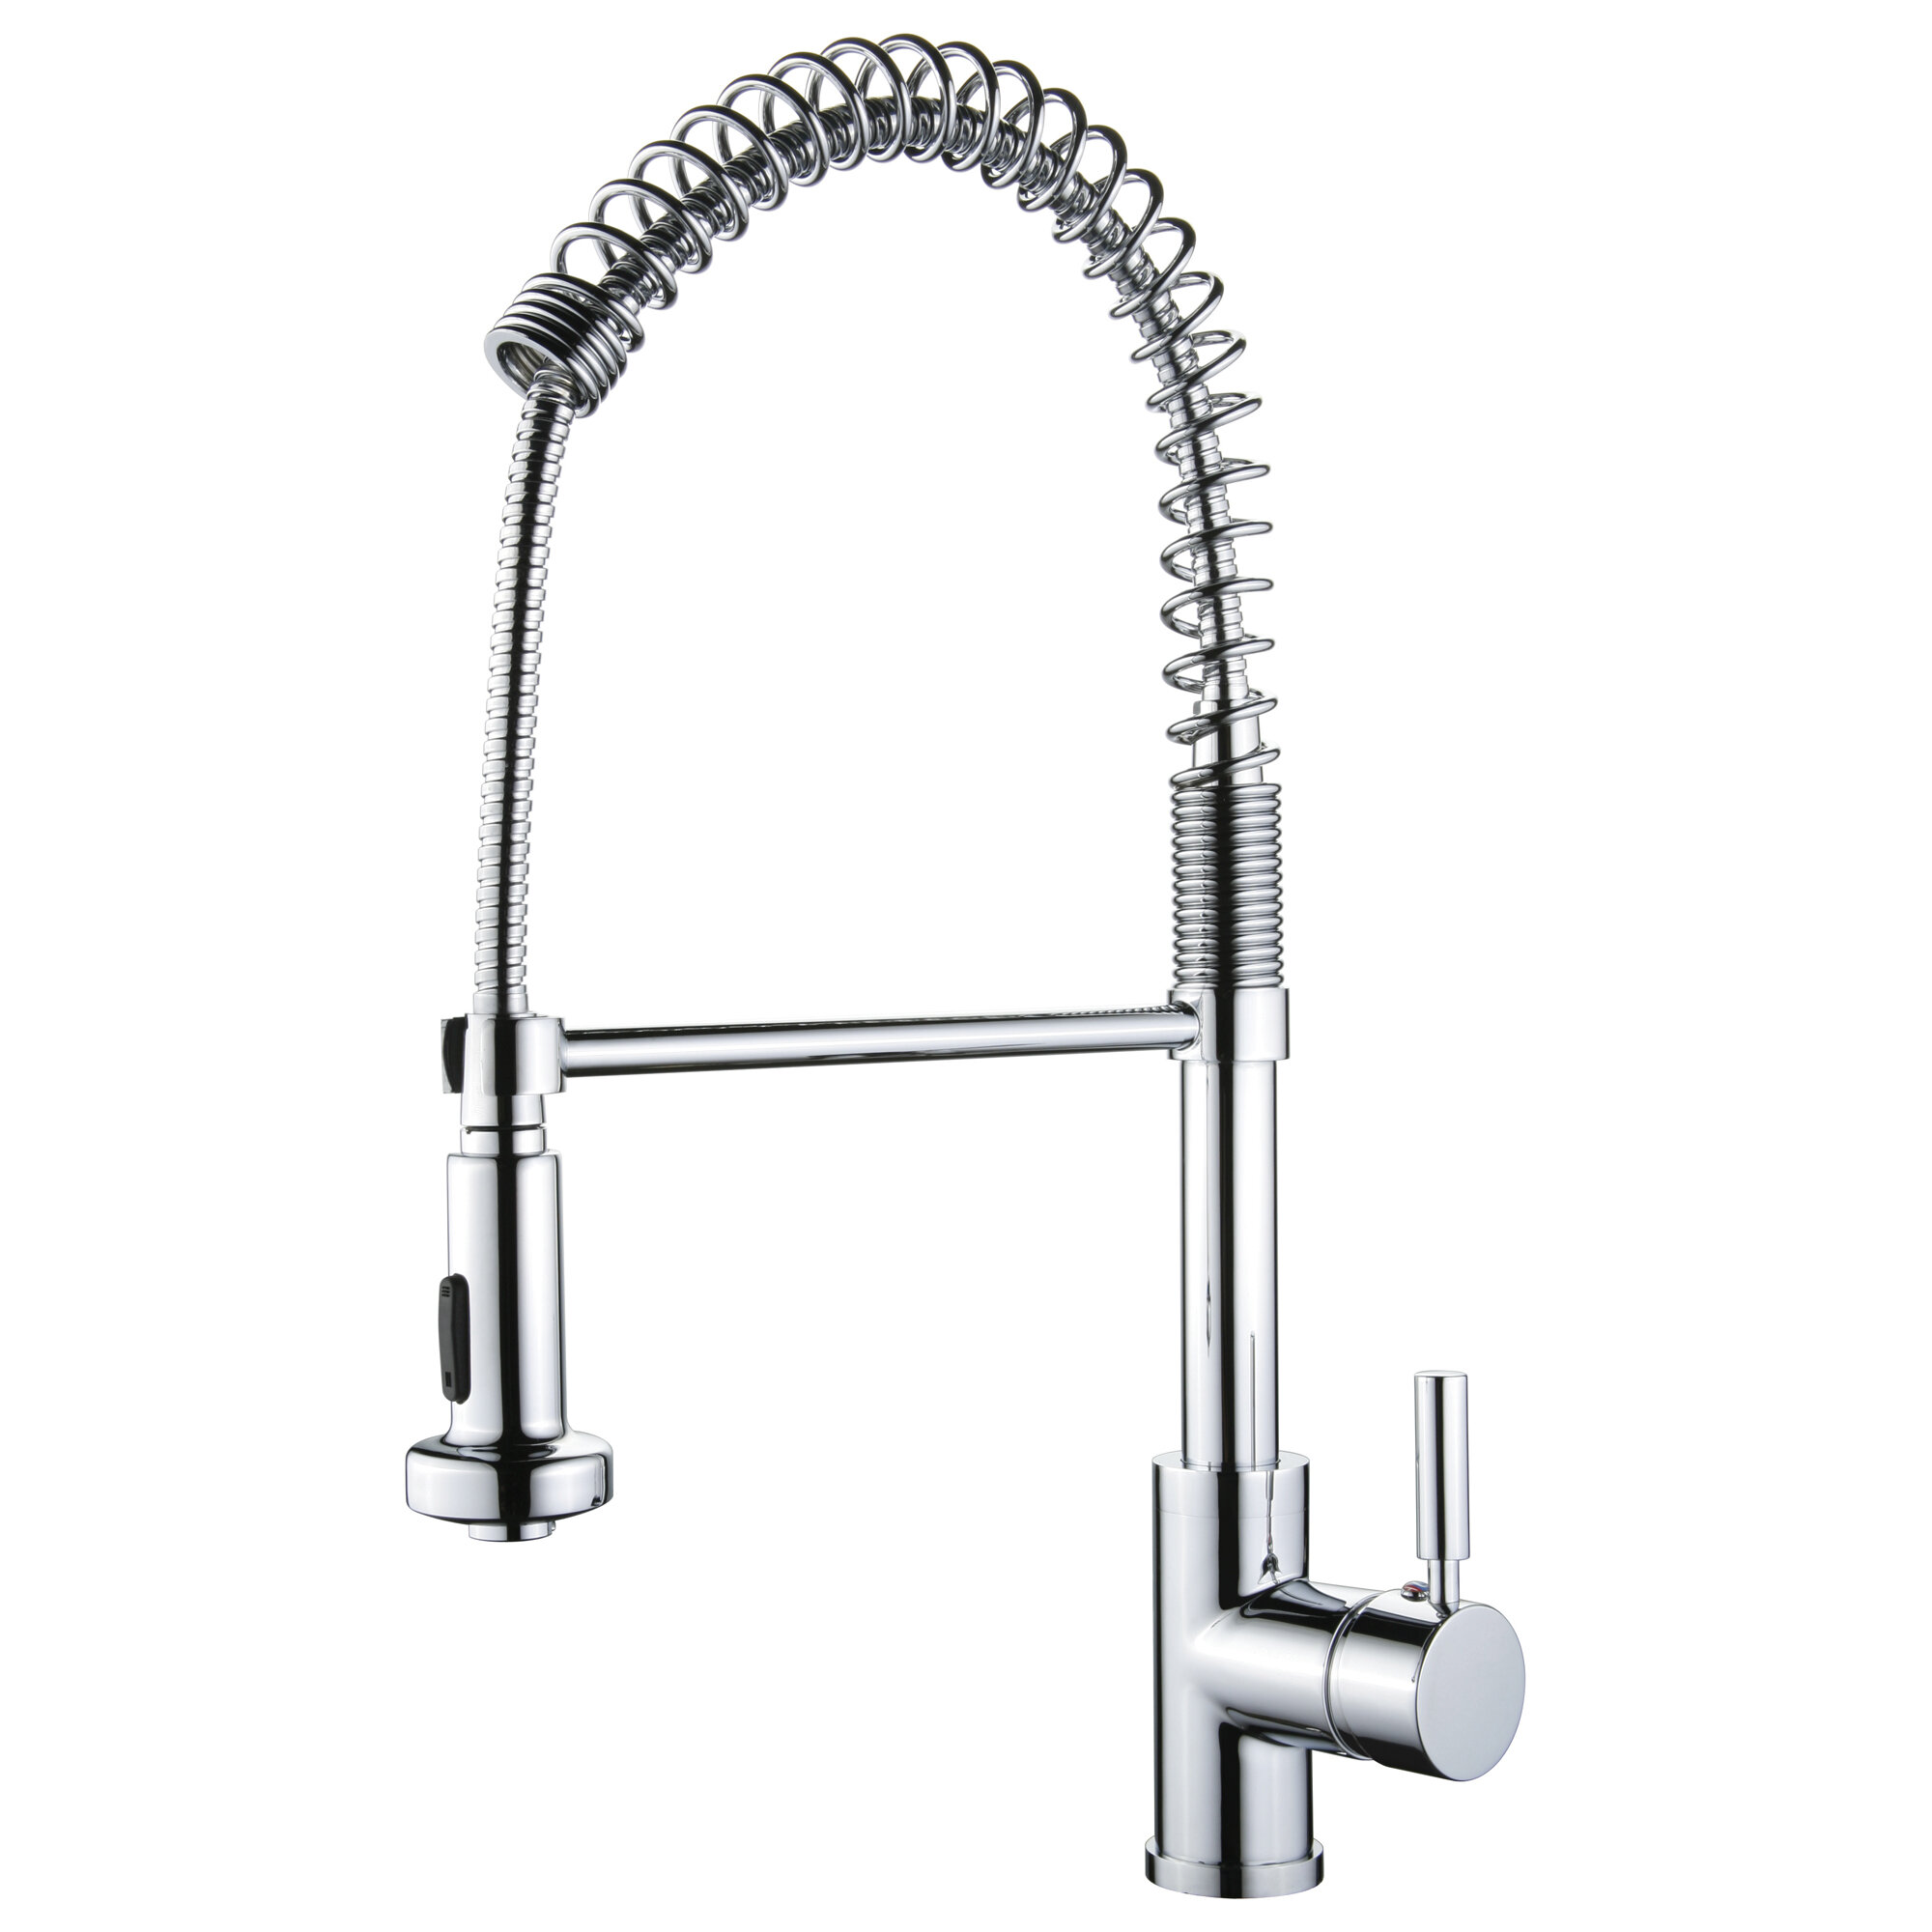 garden function sprayer home down faucet free with handle shipping single today product kitchen kraus overstock pull three style commercial